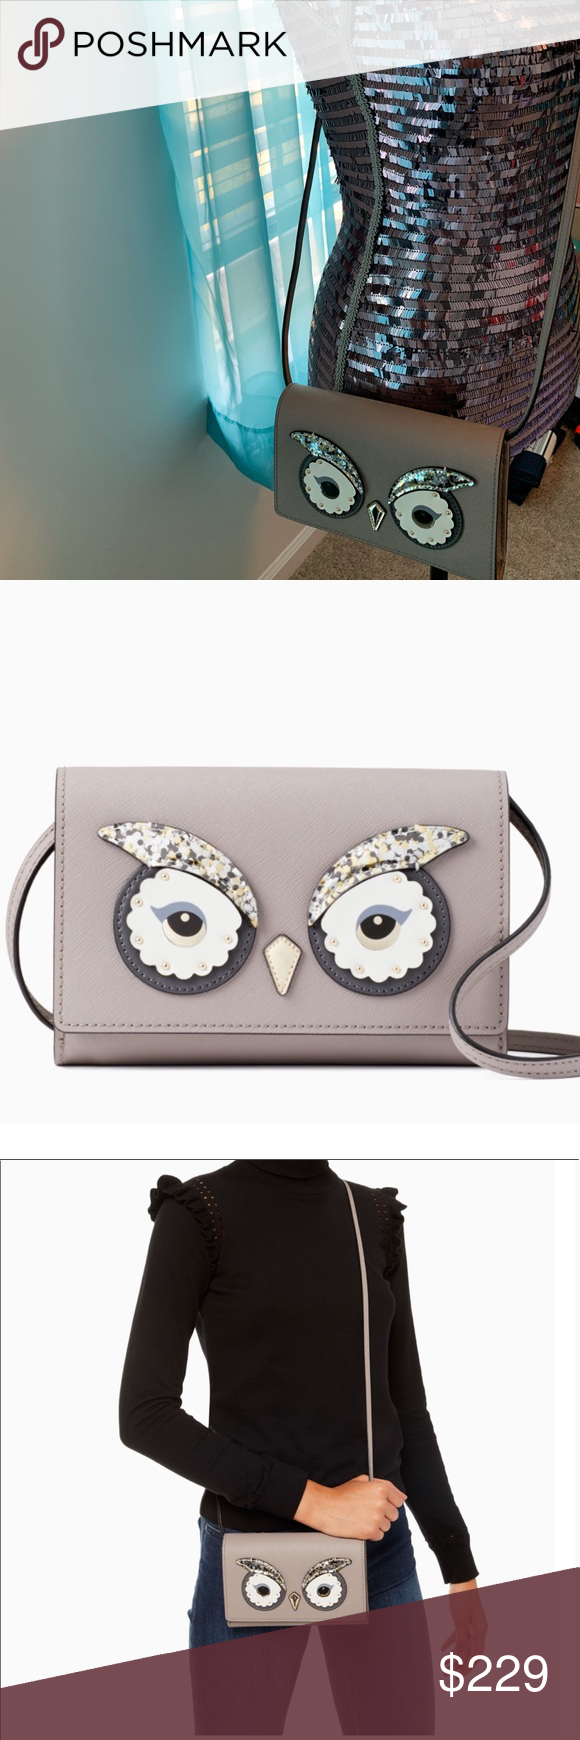 faf10b89fbbea 🆕Authentic Kate Spade  star bright owl summer Bundle and Save  MATERIAL  crosshatched leather capital kate jacquard lining FEATURES crossbody bag  with ...